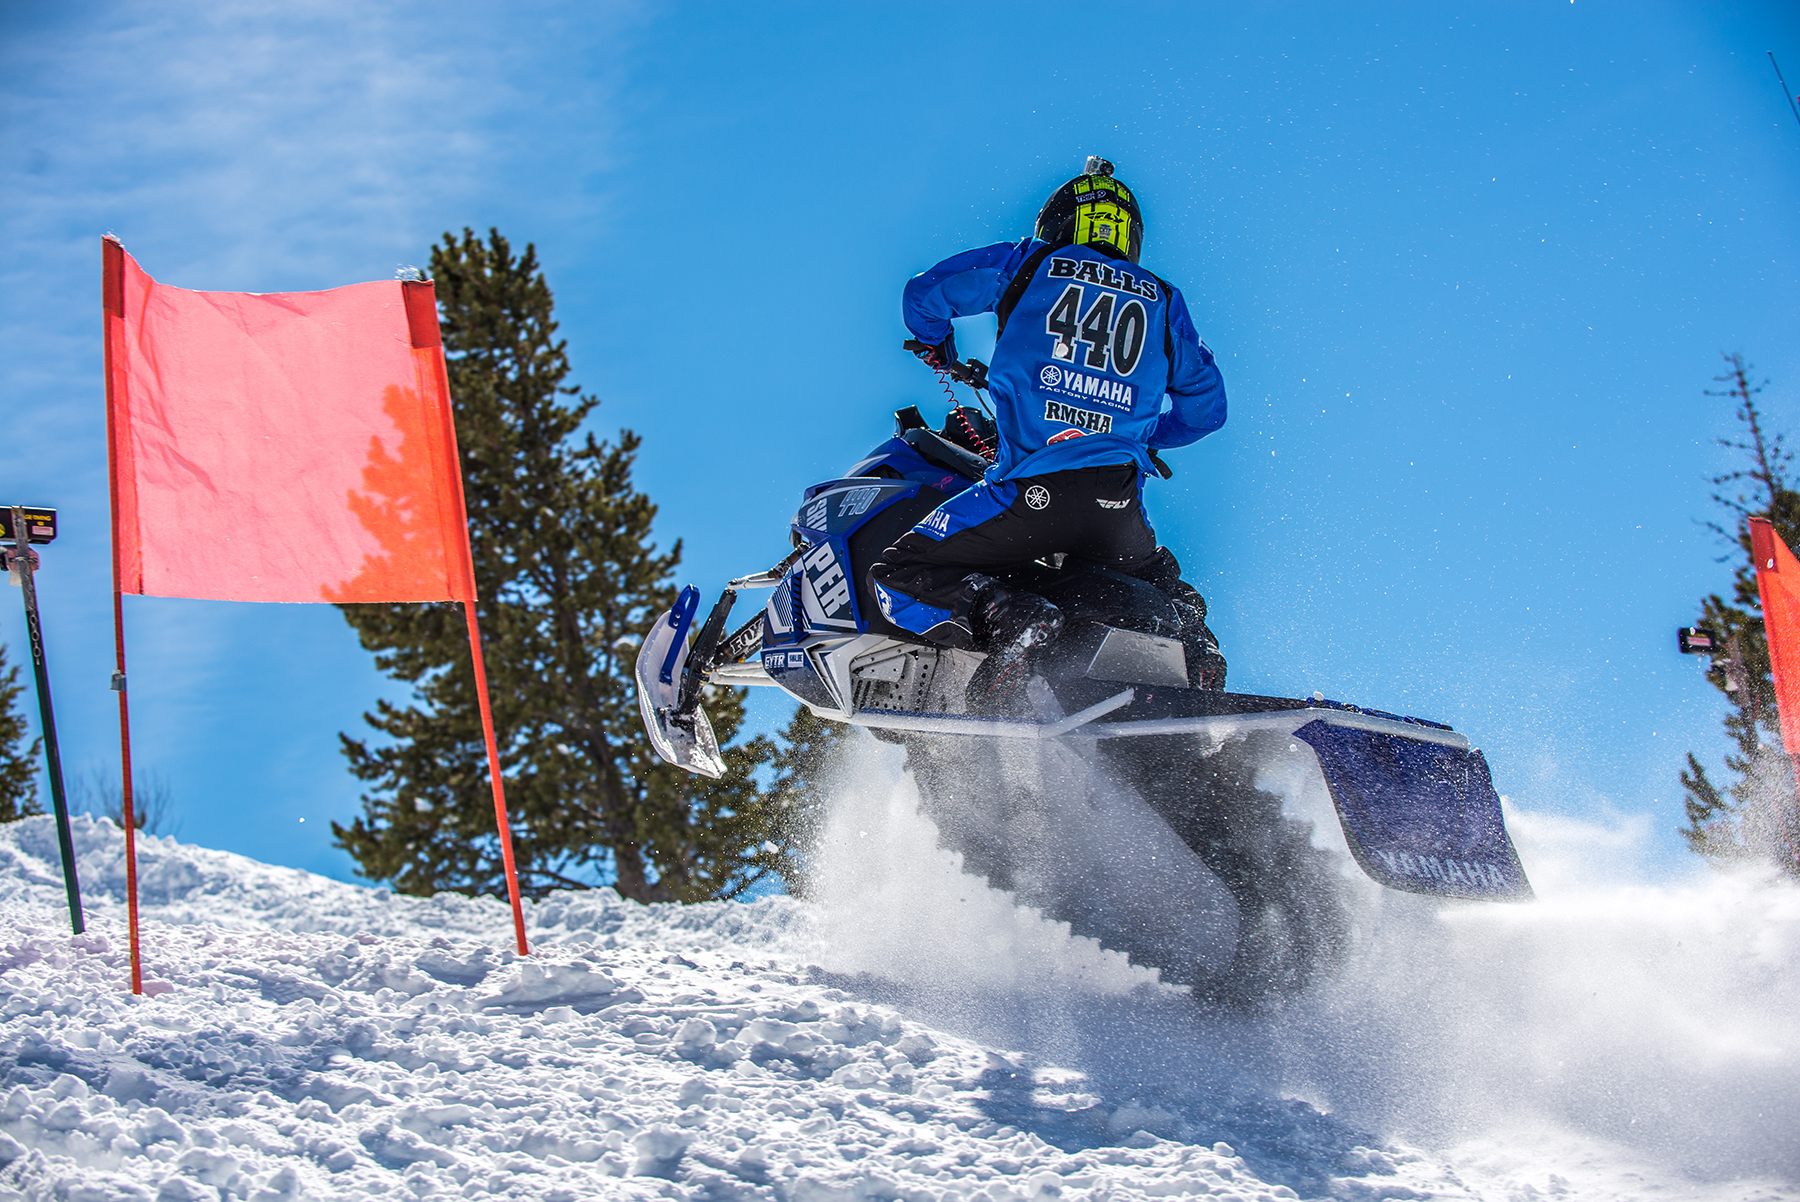 Sledder Featured Article Archives - Page 53 of 100 - Midwest Sports ...